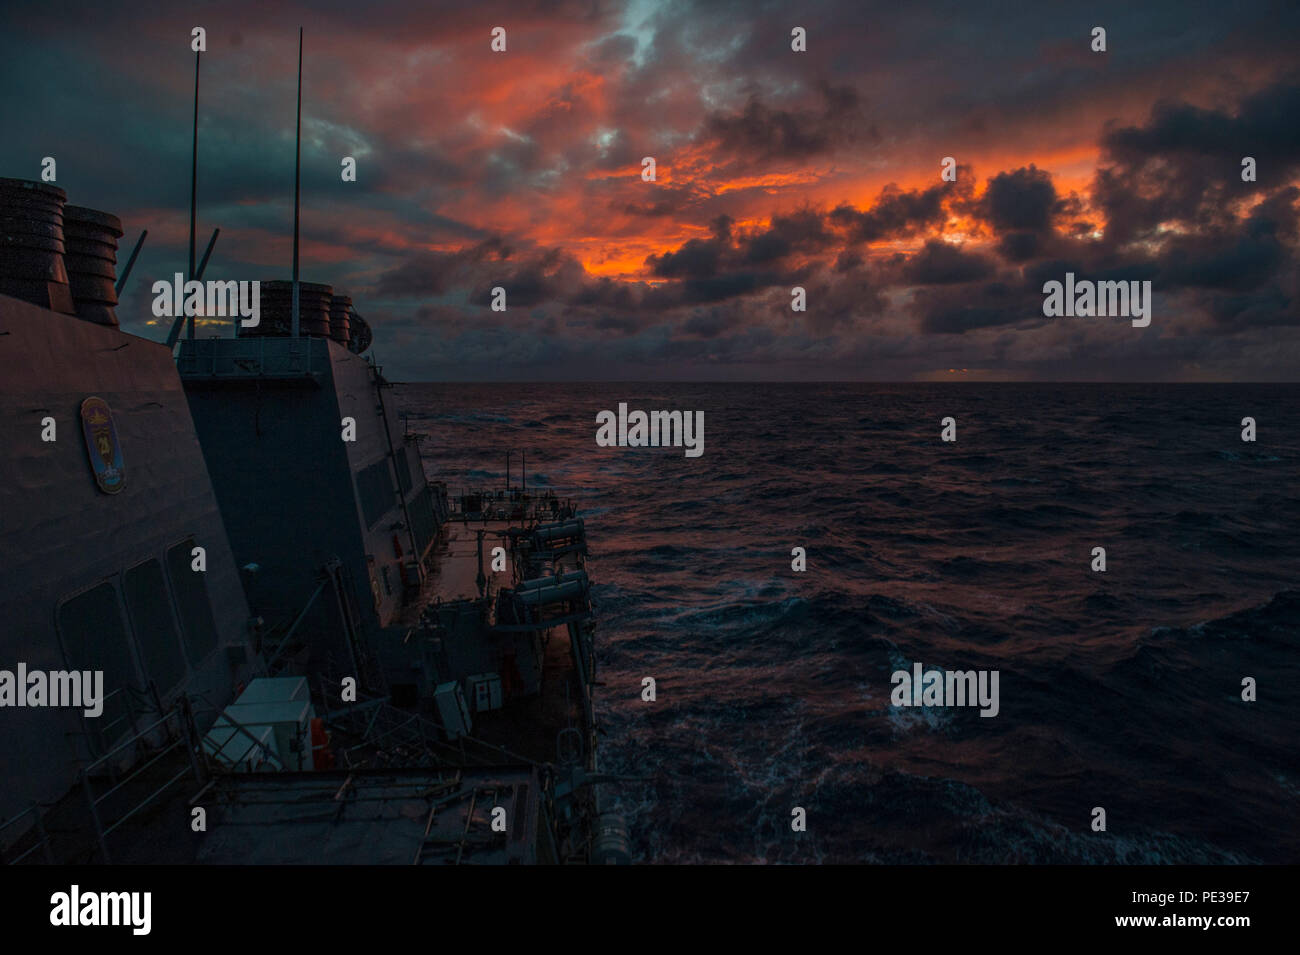 ATLANTIC OCEAN (Sept. 18, 2015) Guided-missile destroyer USS Ramage (DDG 61) transits the Atlantic Ocean. Ramage is underway participating in a Composite Training Unit Exercise (COMPTUEX) with the Harry S. Truman Carrier Strike Group. (U.S. Navy Photo by Mass Communication Specialist 3rd Class J. Richardson/Released) Stock Photo